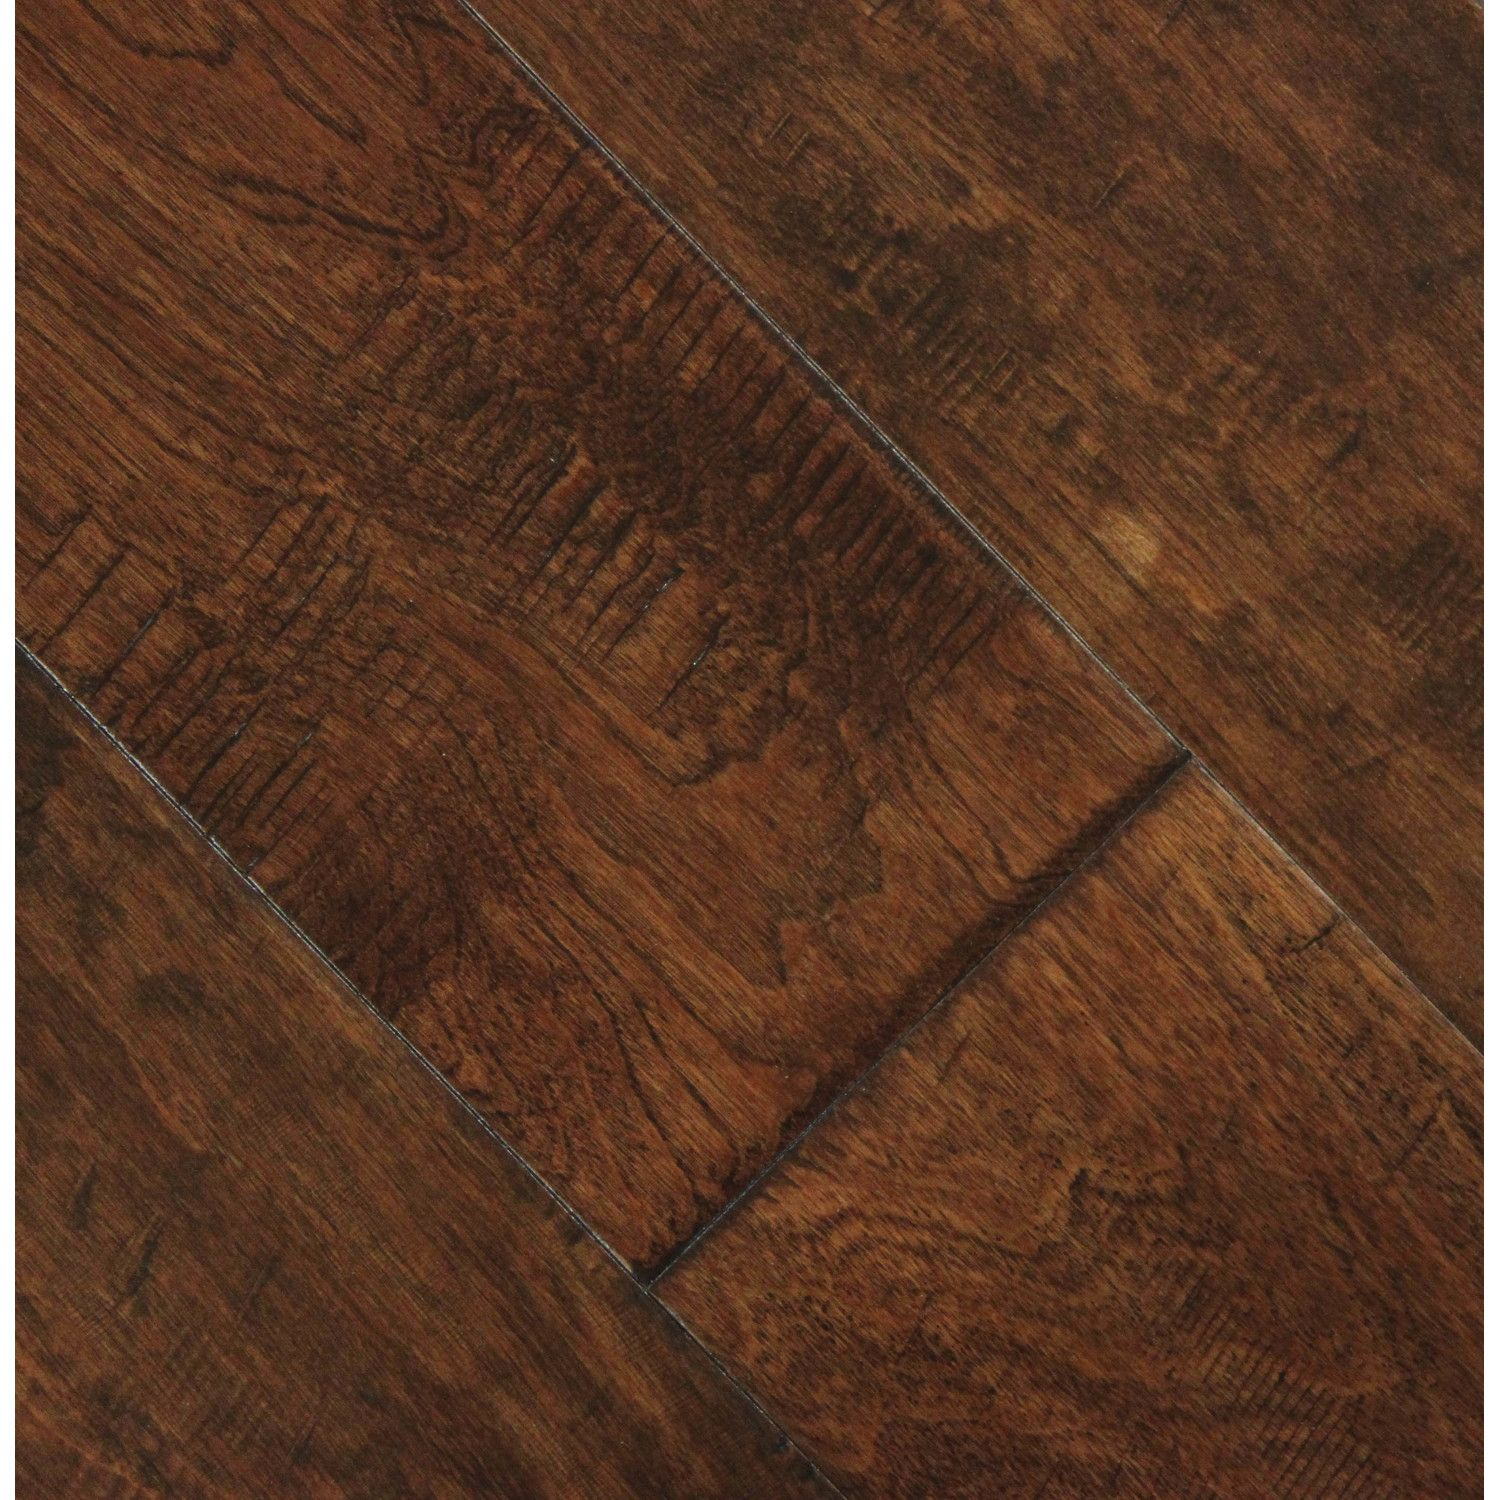 Forest Valley Flooring Frontier 5 Engineered Birch Hardwood In Tomahawk Reviews Wayfair